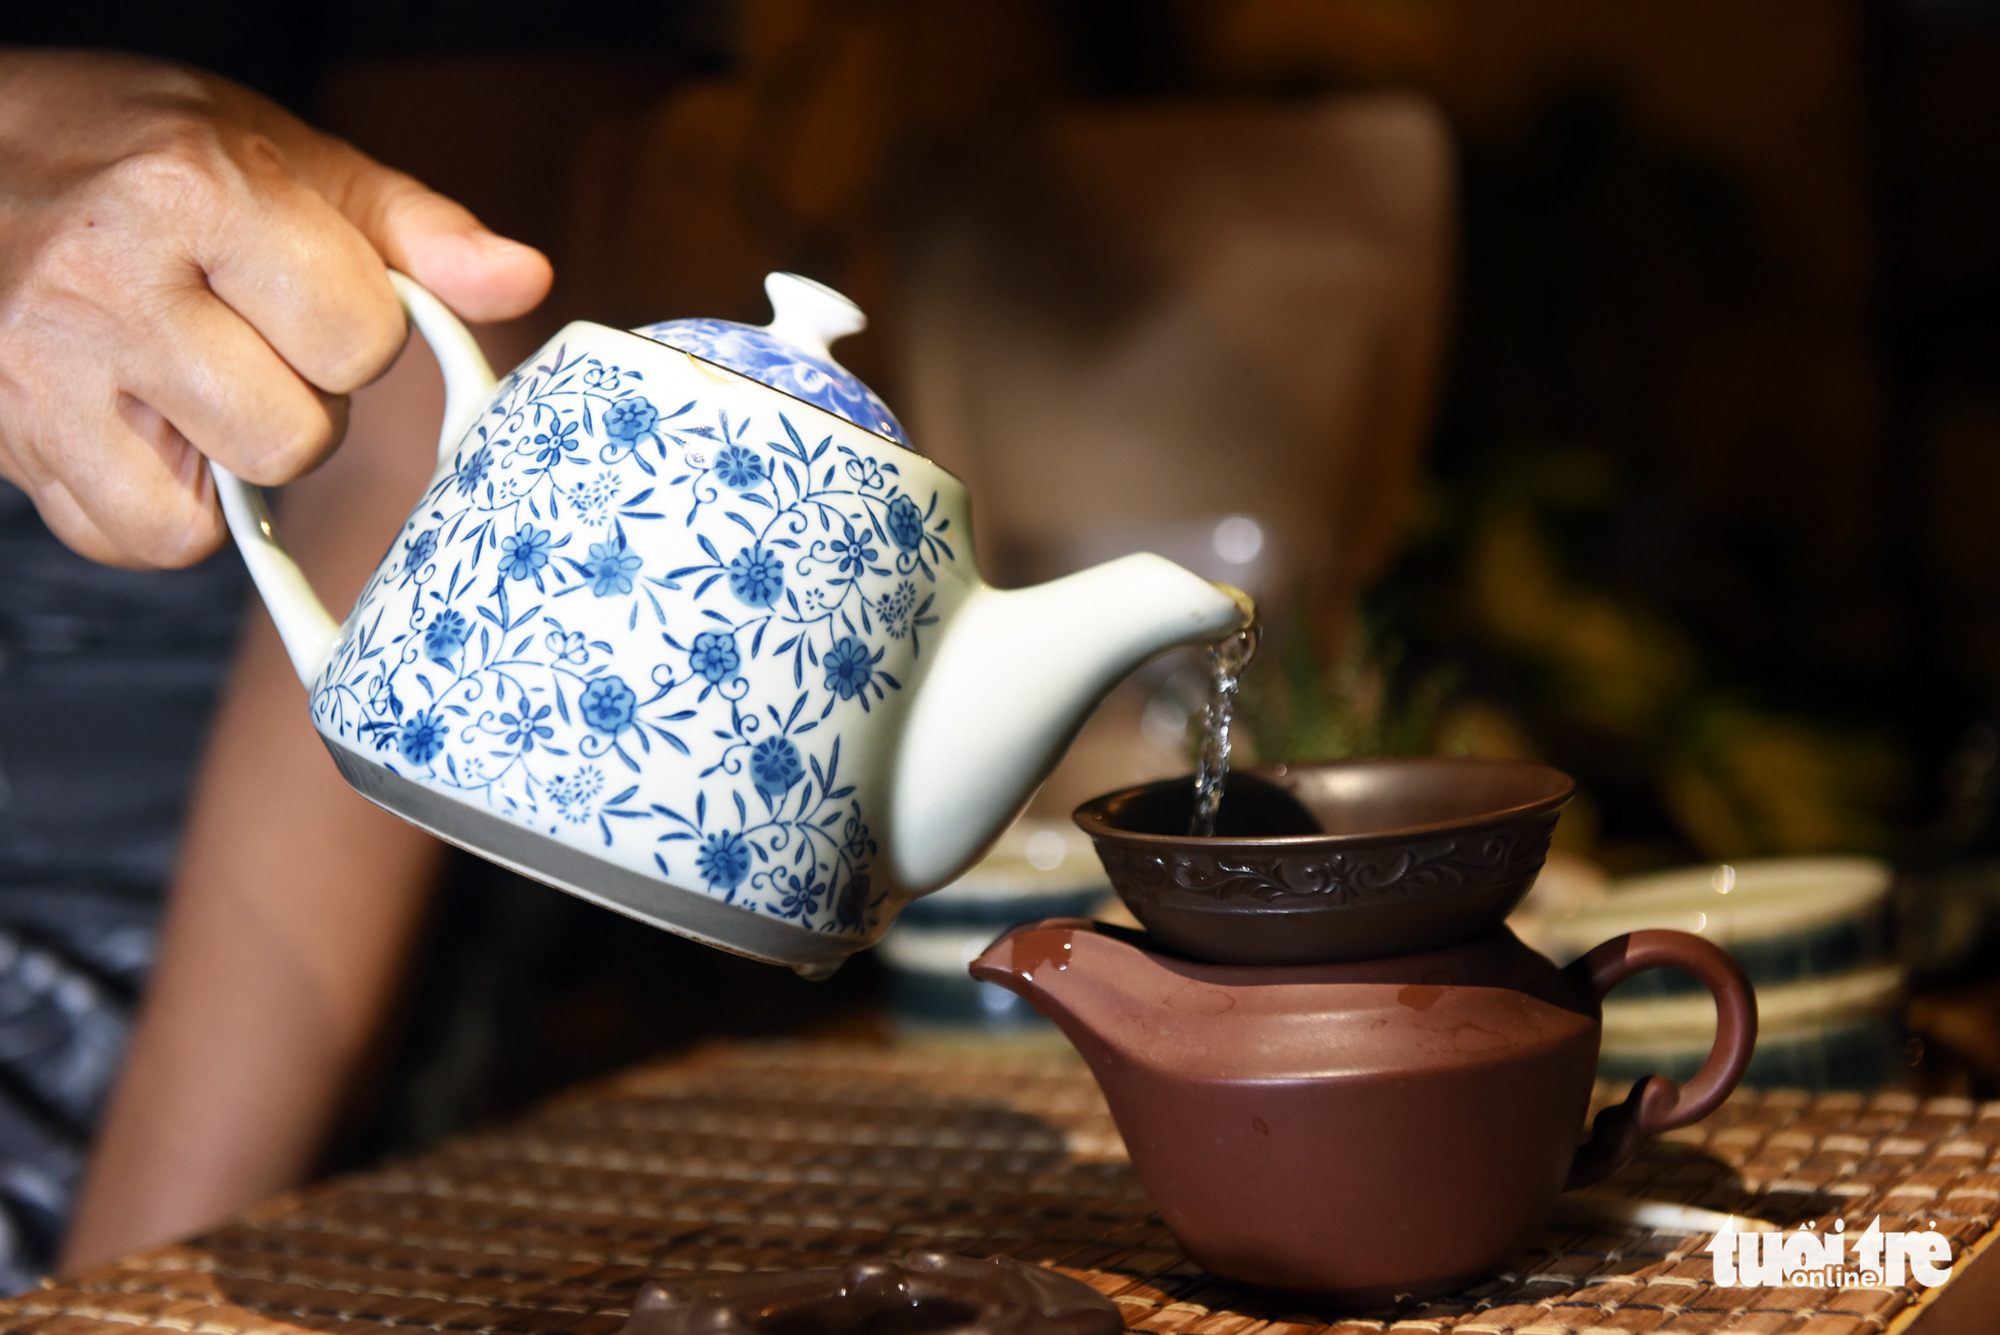 Finding Zen at Saigon's unique pay-what-you-want teahouse